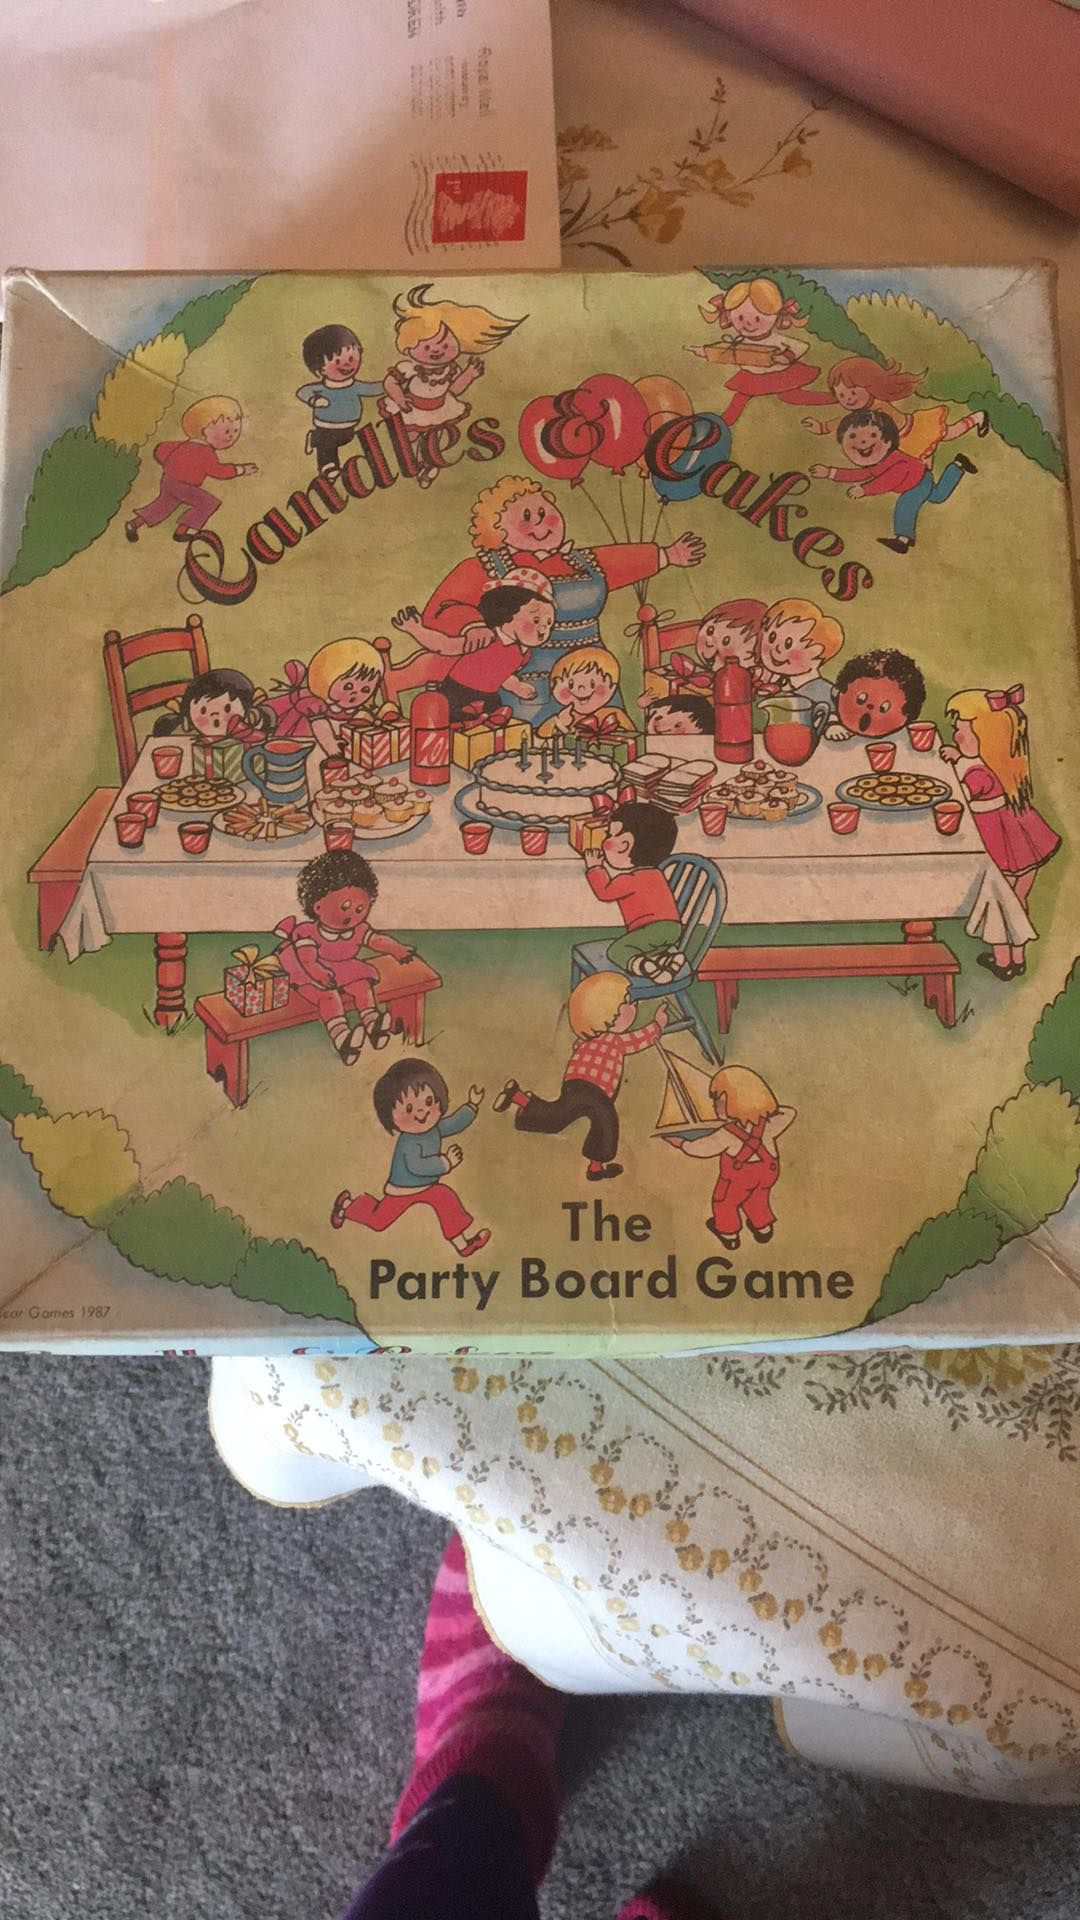 Candles & Cakes: The Party Board Game